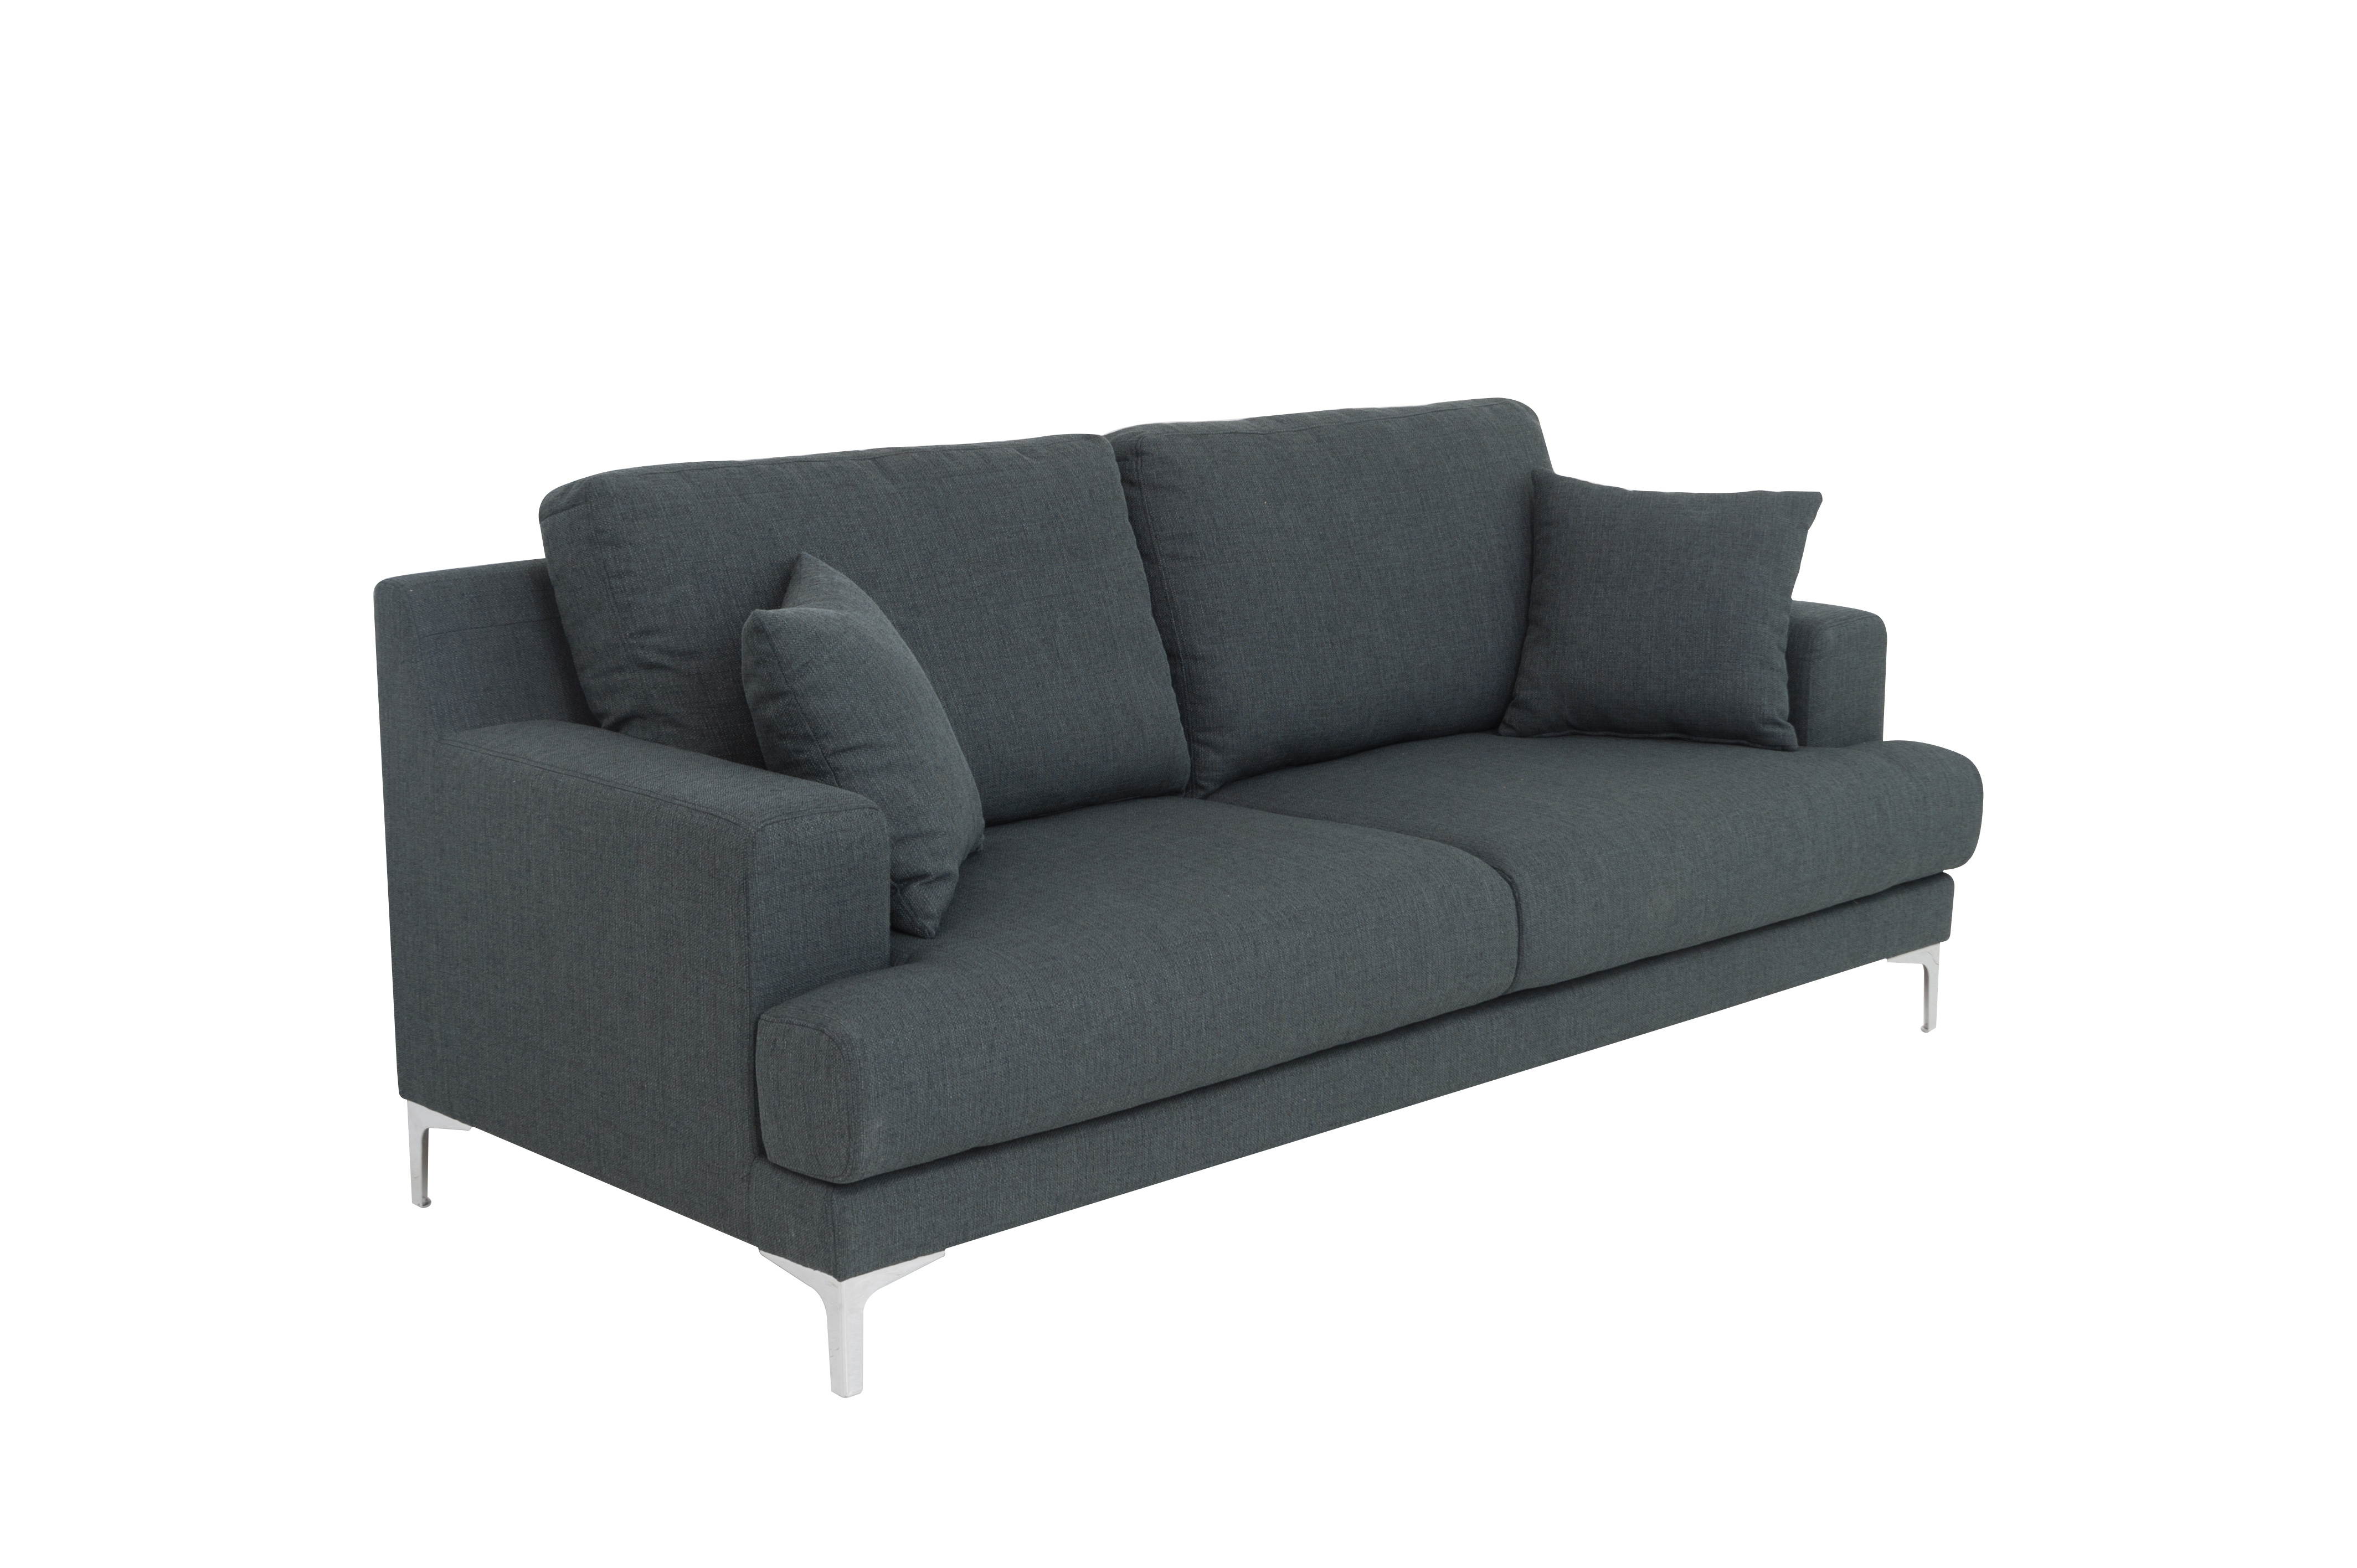 Assembly Required Sofa Assembly Required Sofa Suppliers and